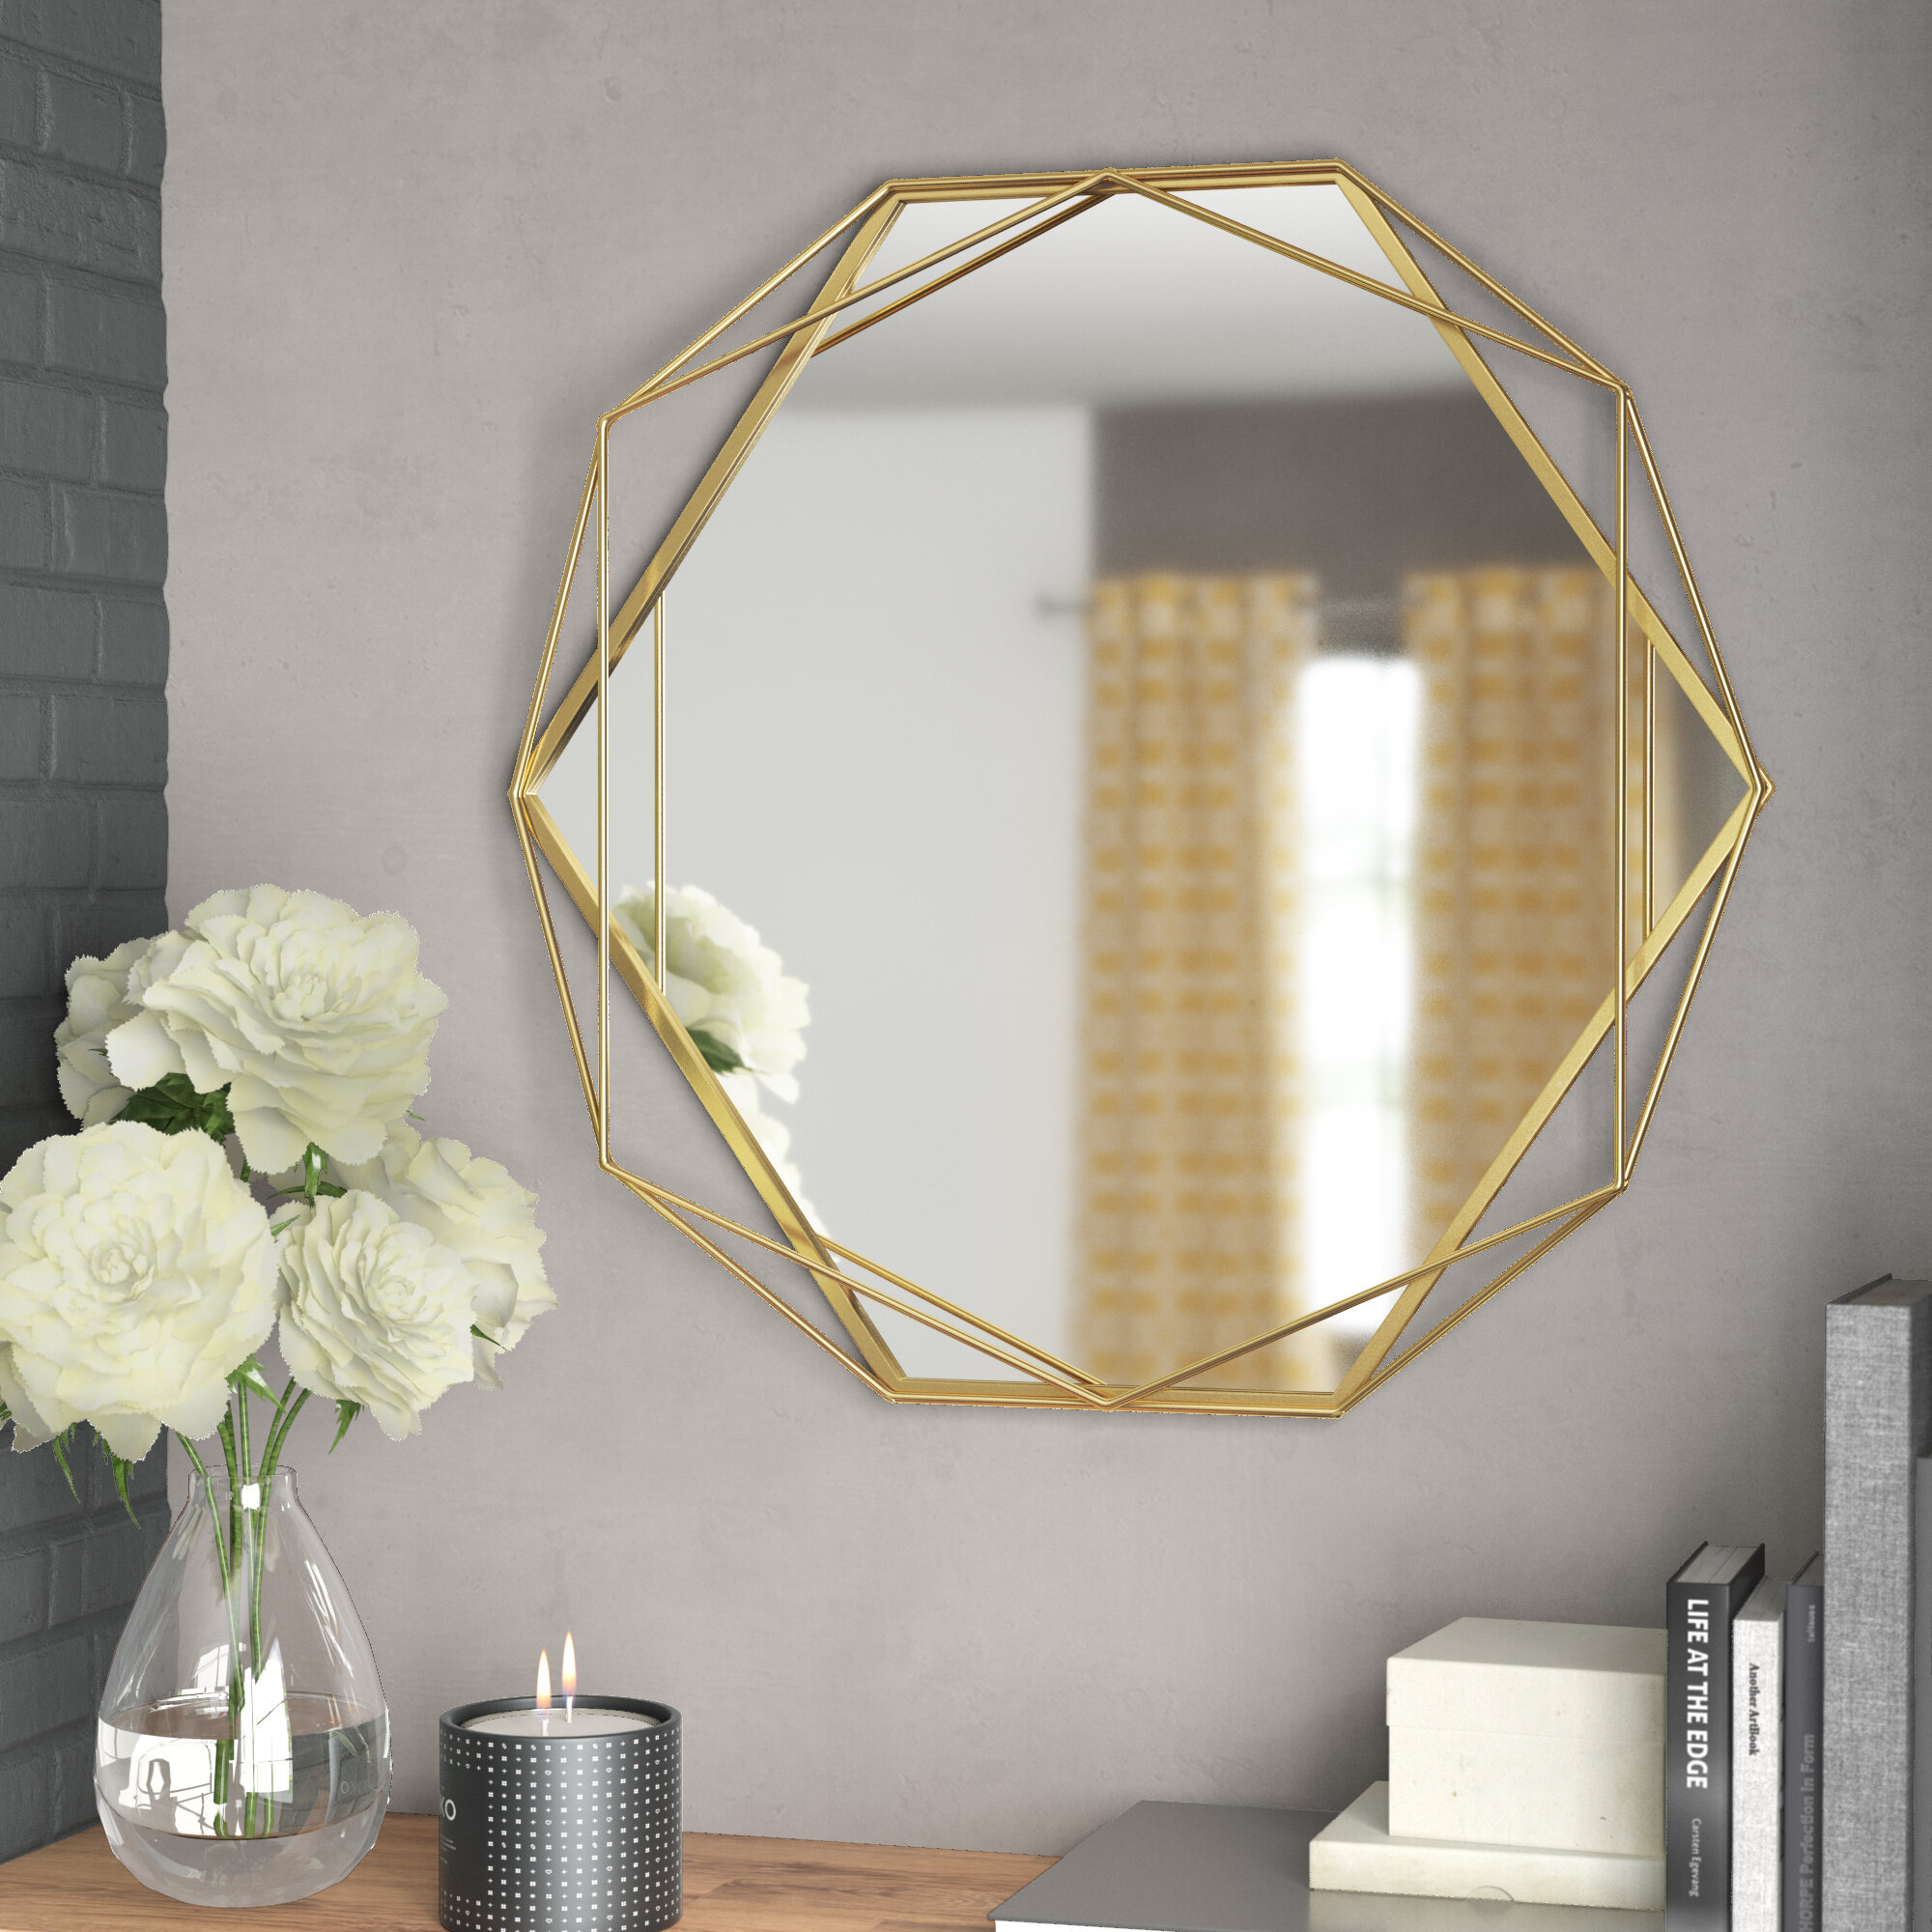 Fashionable Rings Wall Decor By Wrought Studio Throughout Wrought Studio Pippin Metal Frame Wall Mirror & Reviews (View 7 of 20)